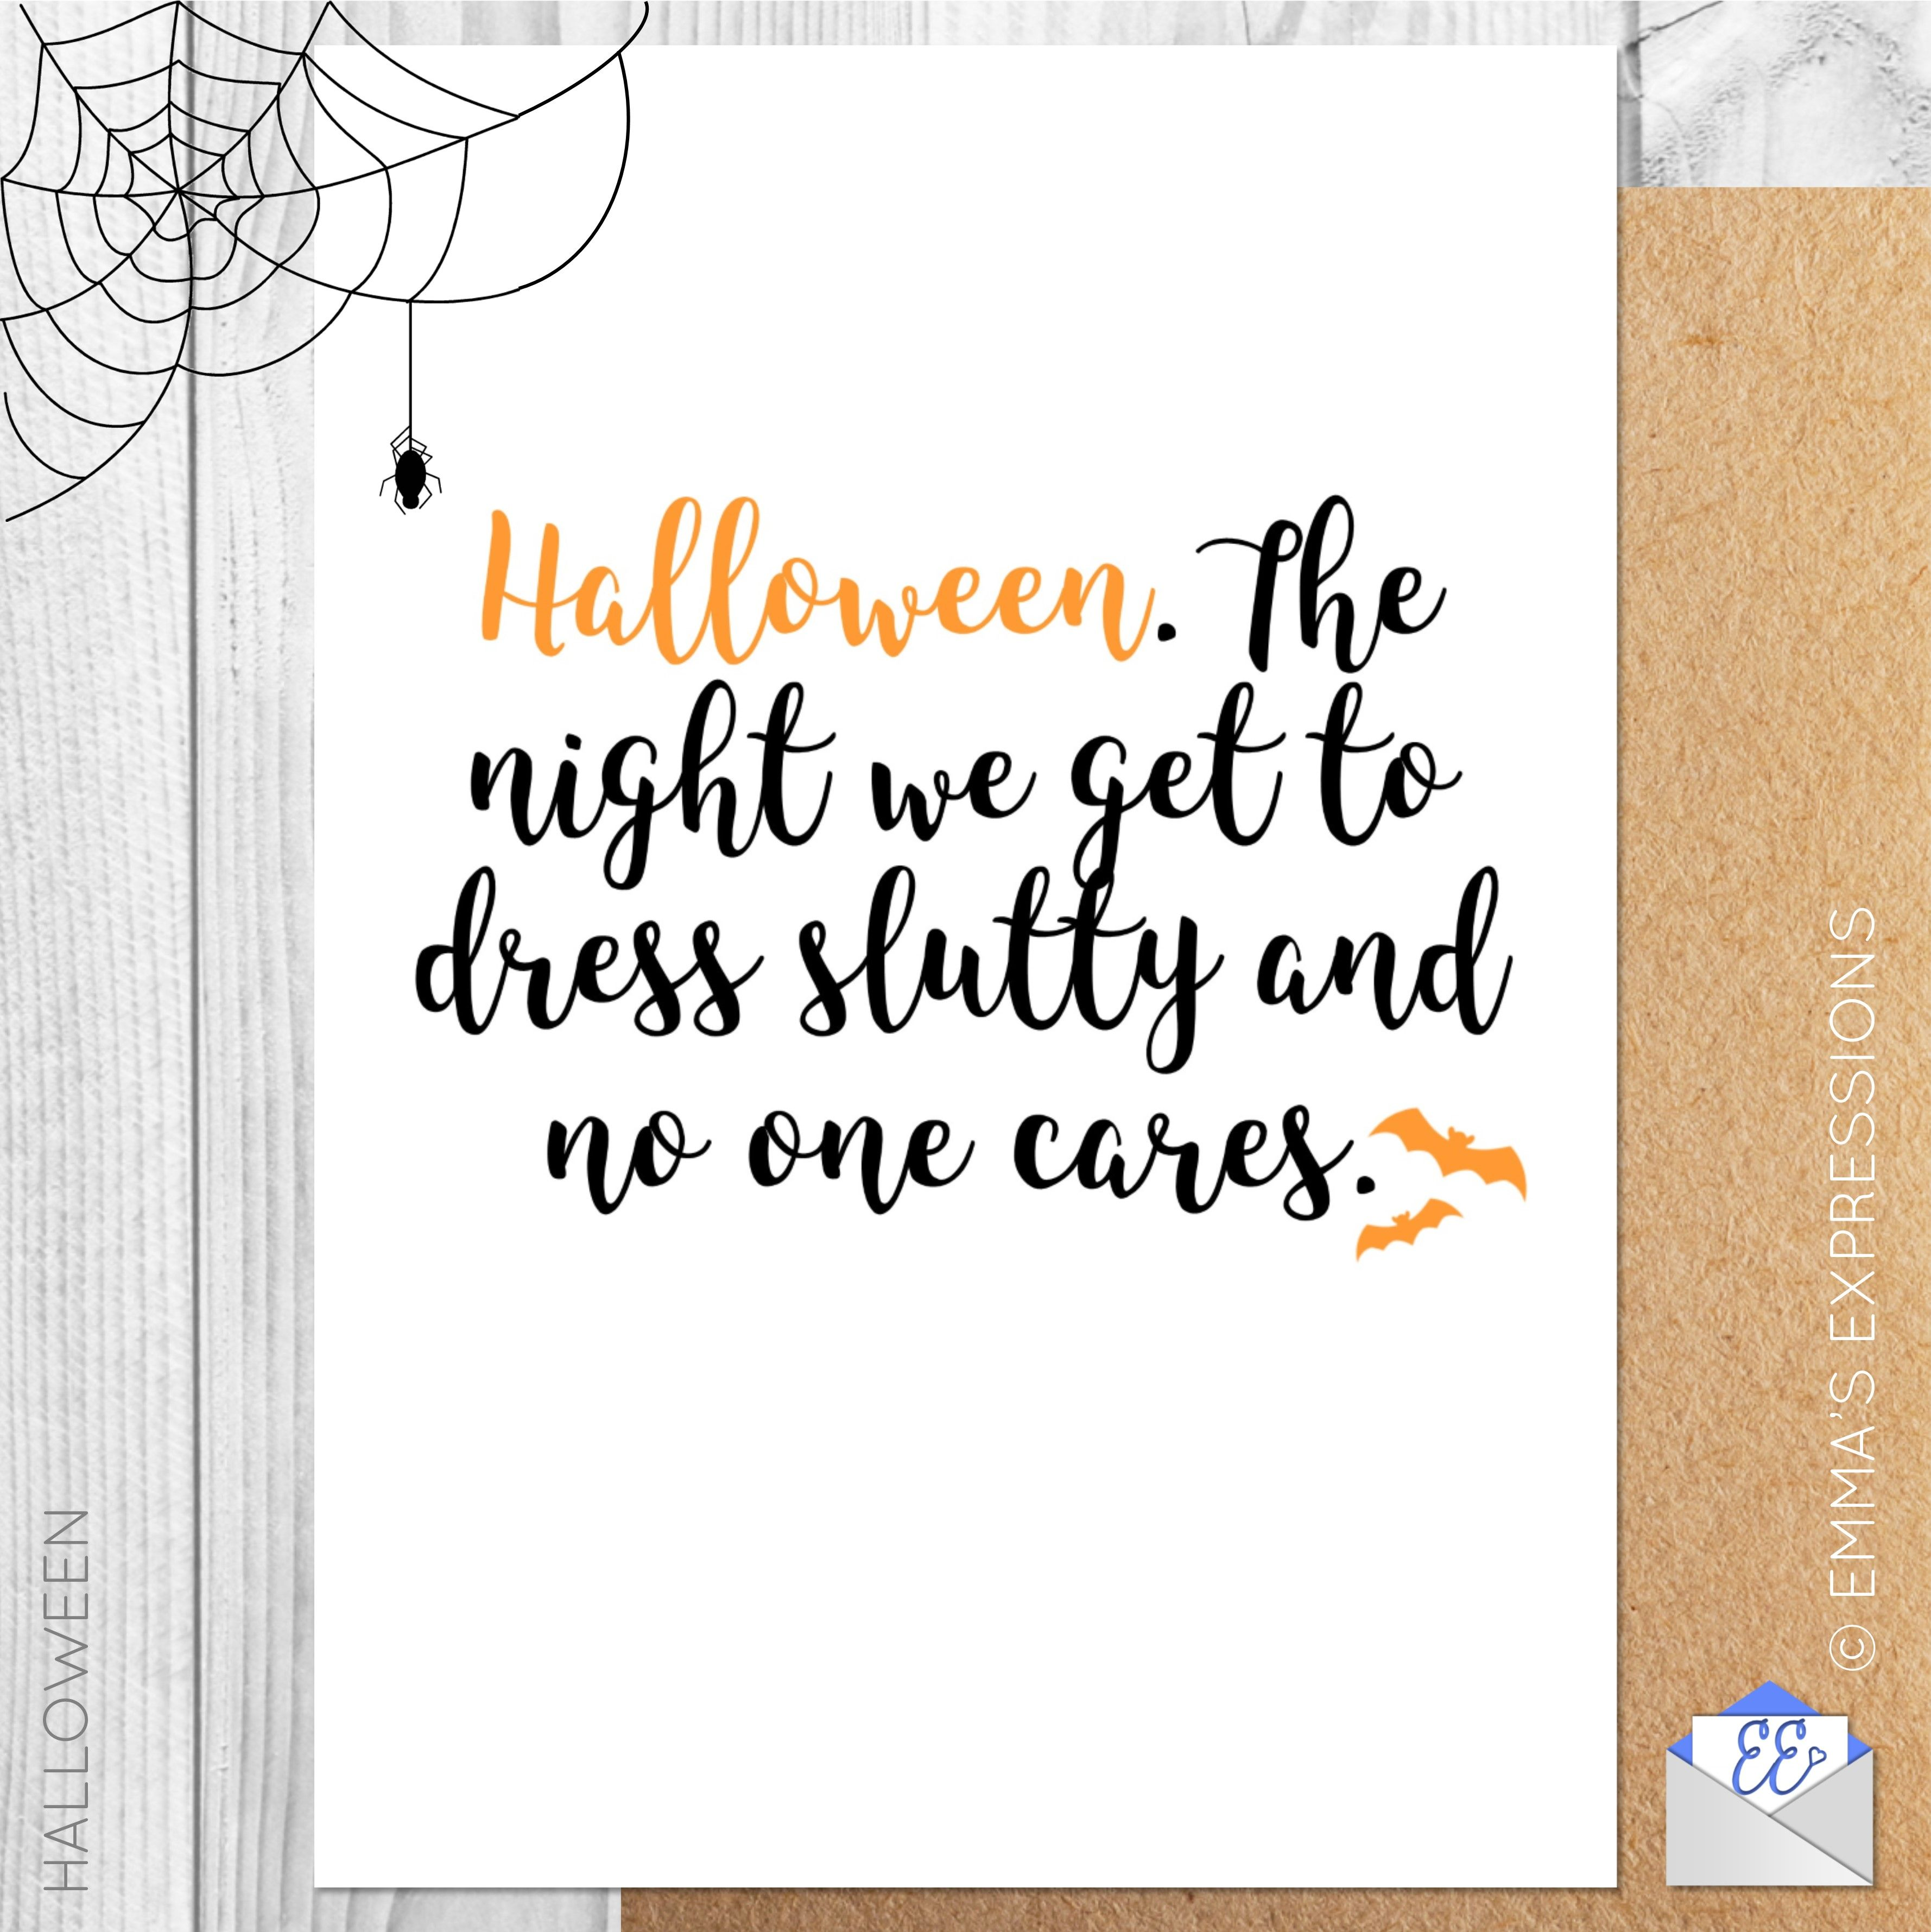 Halloween the night we get to dress slutty and no one cares funny the night we get to dress slutty and no one cares funny halloween m4hsunfo